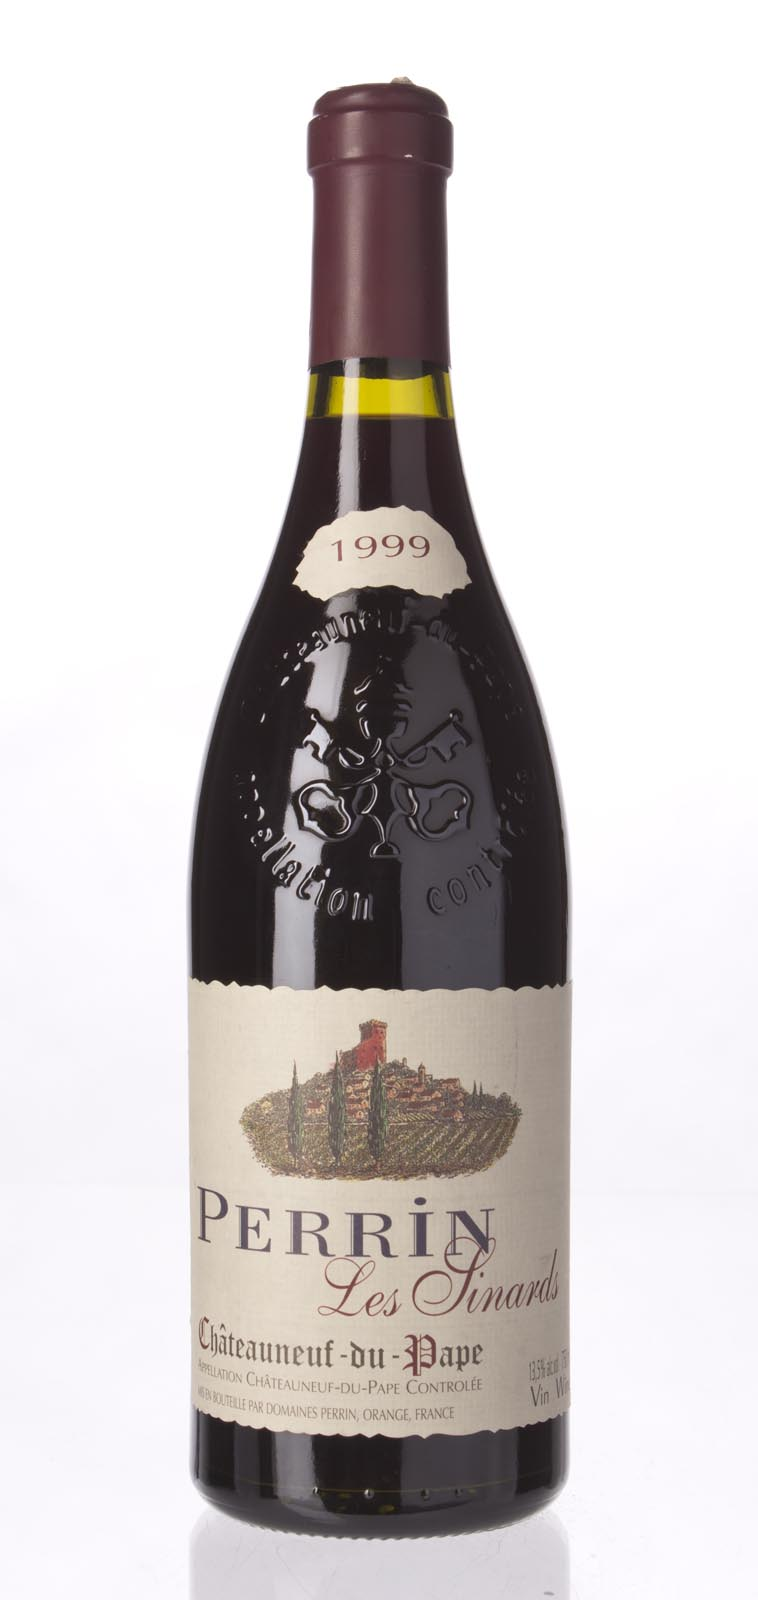 Perrin Chateauneuf du Pape les Sinards 1999, 750mL (WA88-89) from The BPW - Merchants of rare and fine wines.